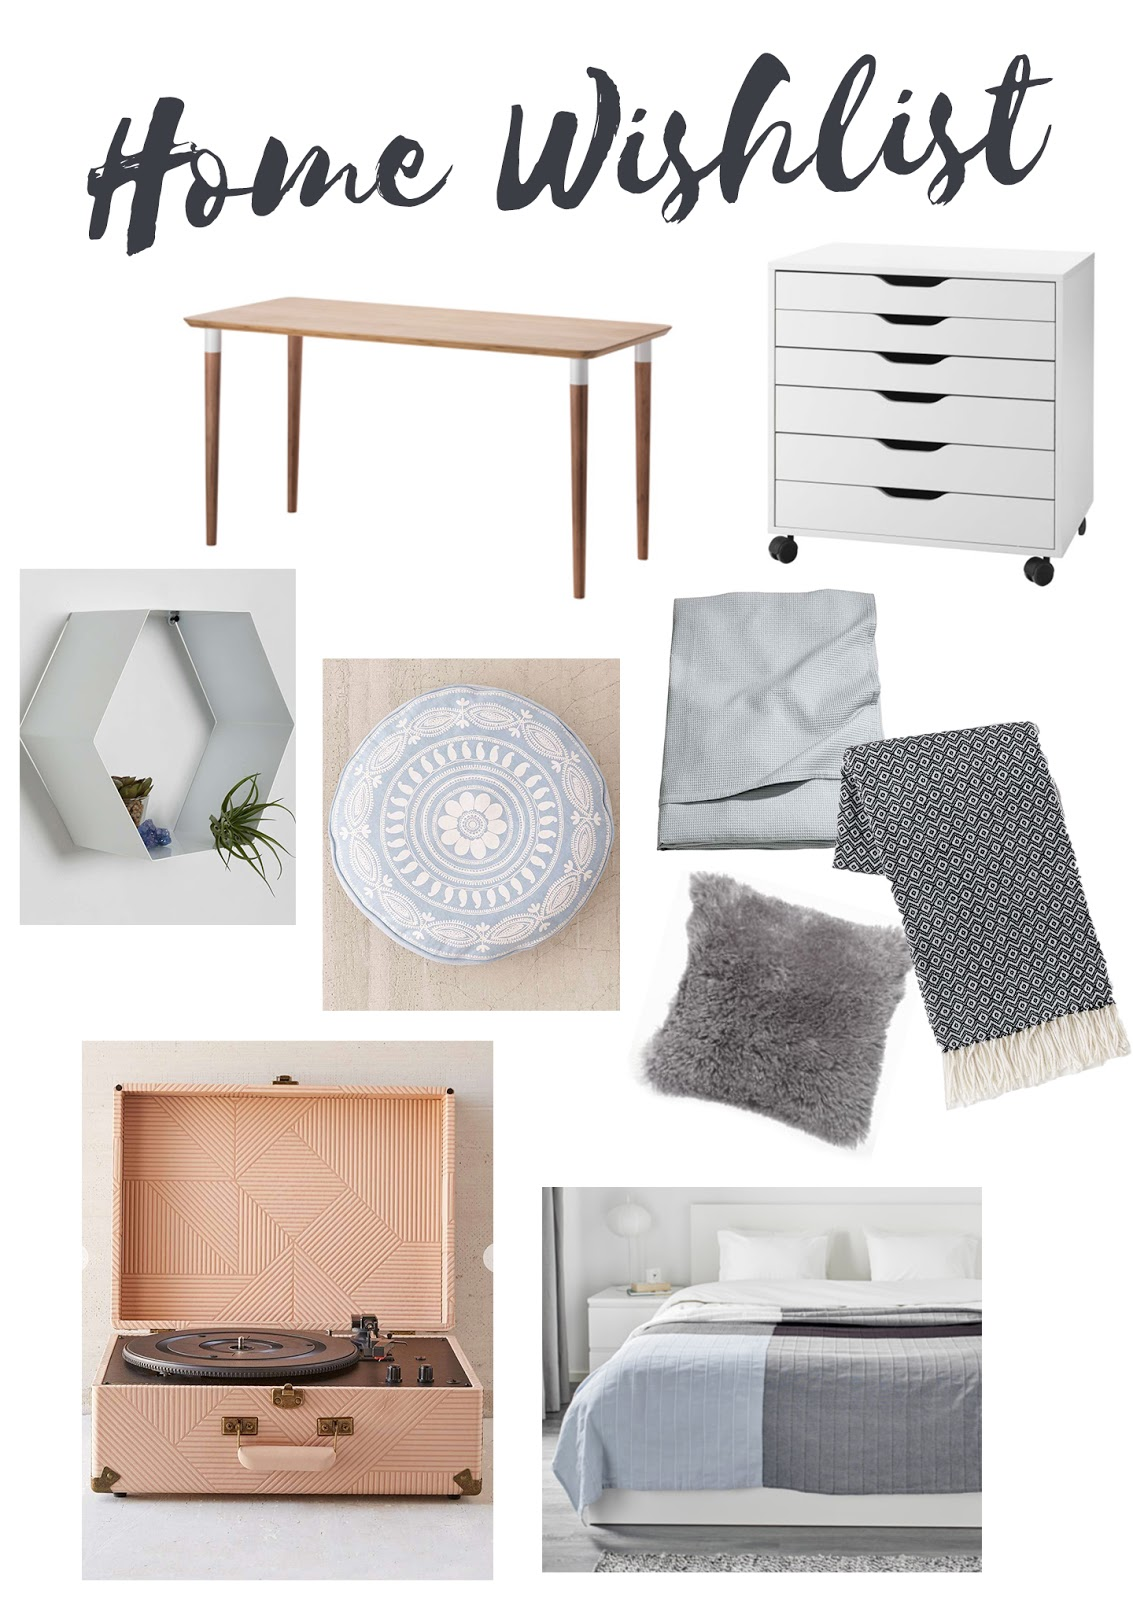 Homeware Wishlist